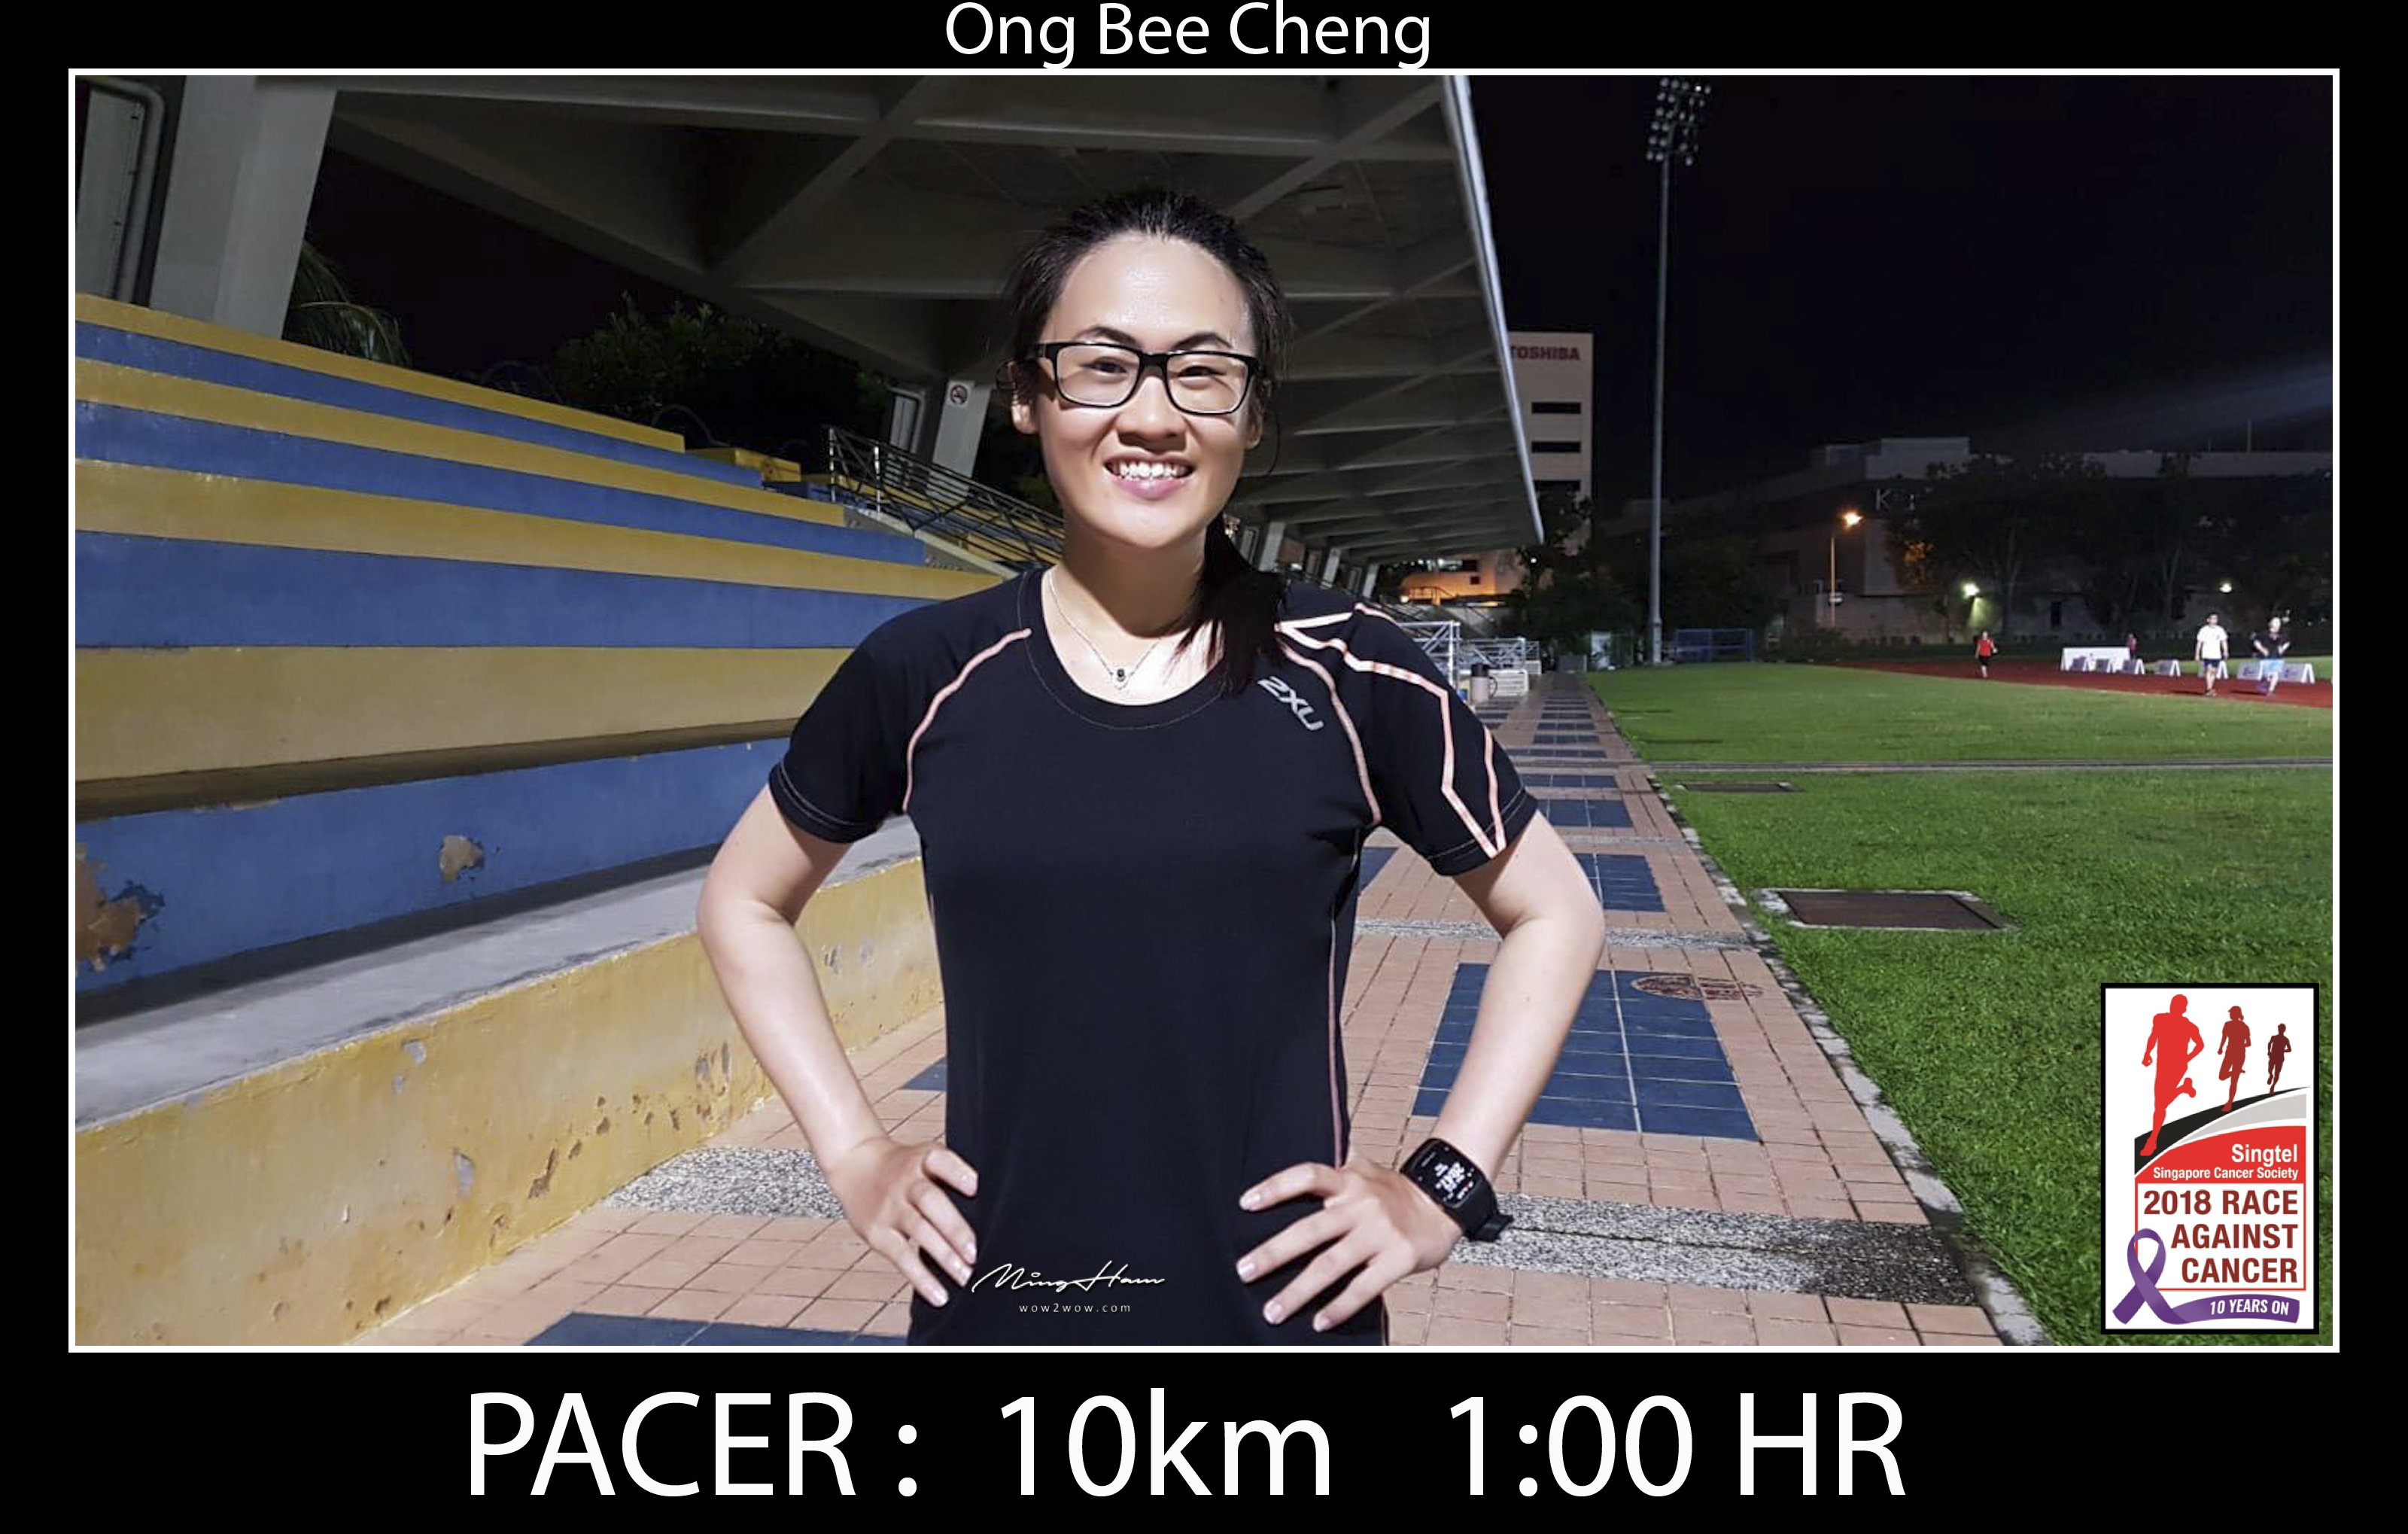 10km 1_00HR Ong Bee Cheng MH